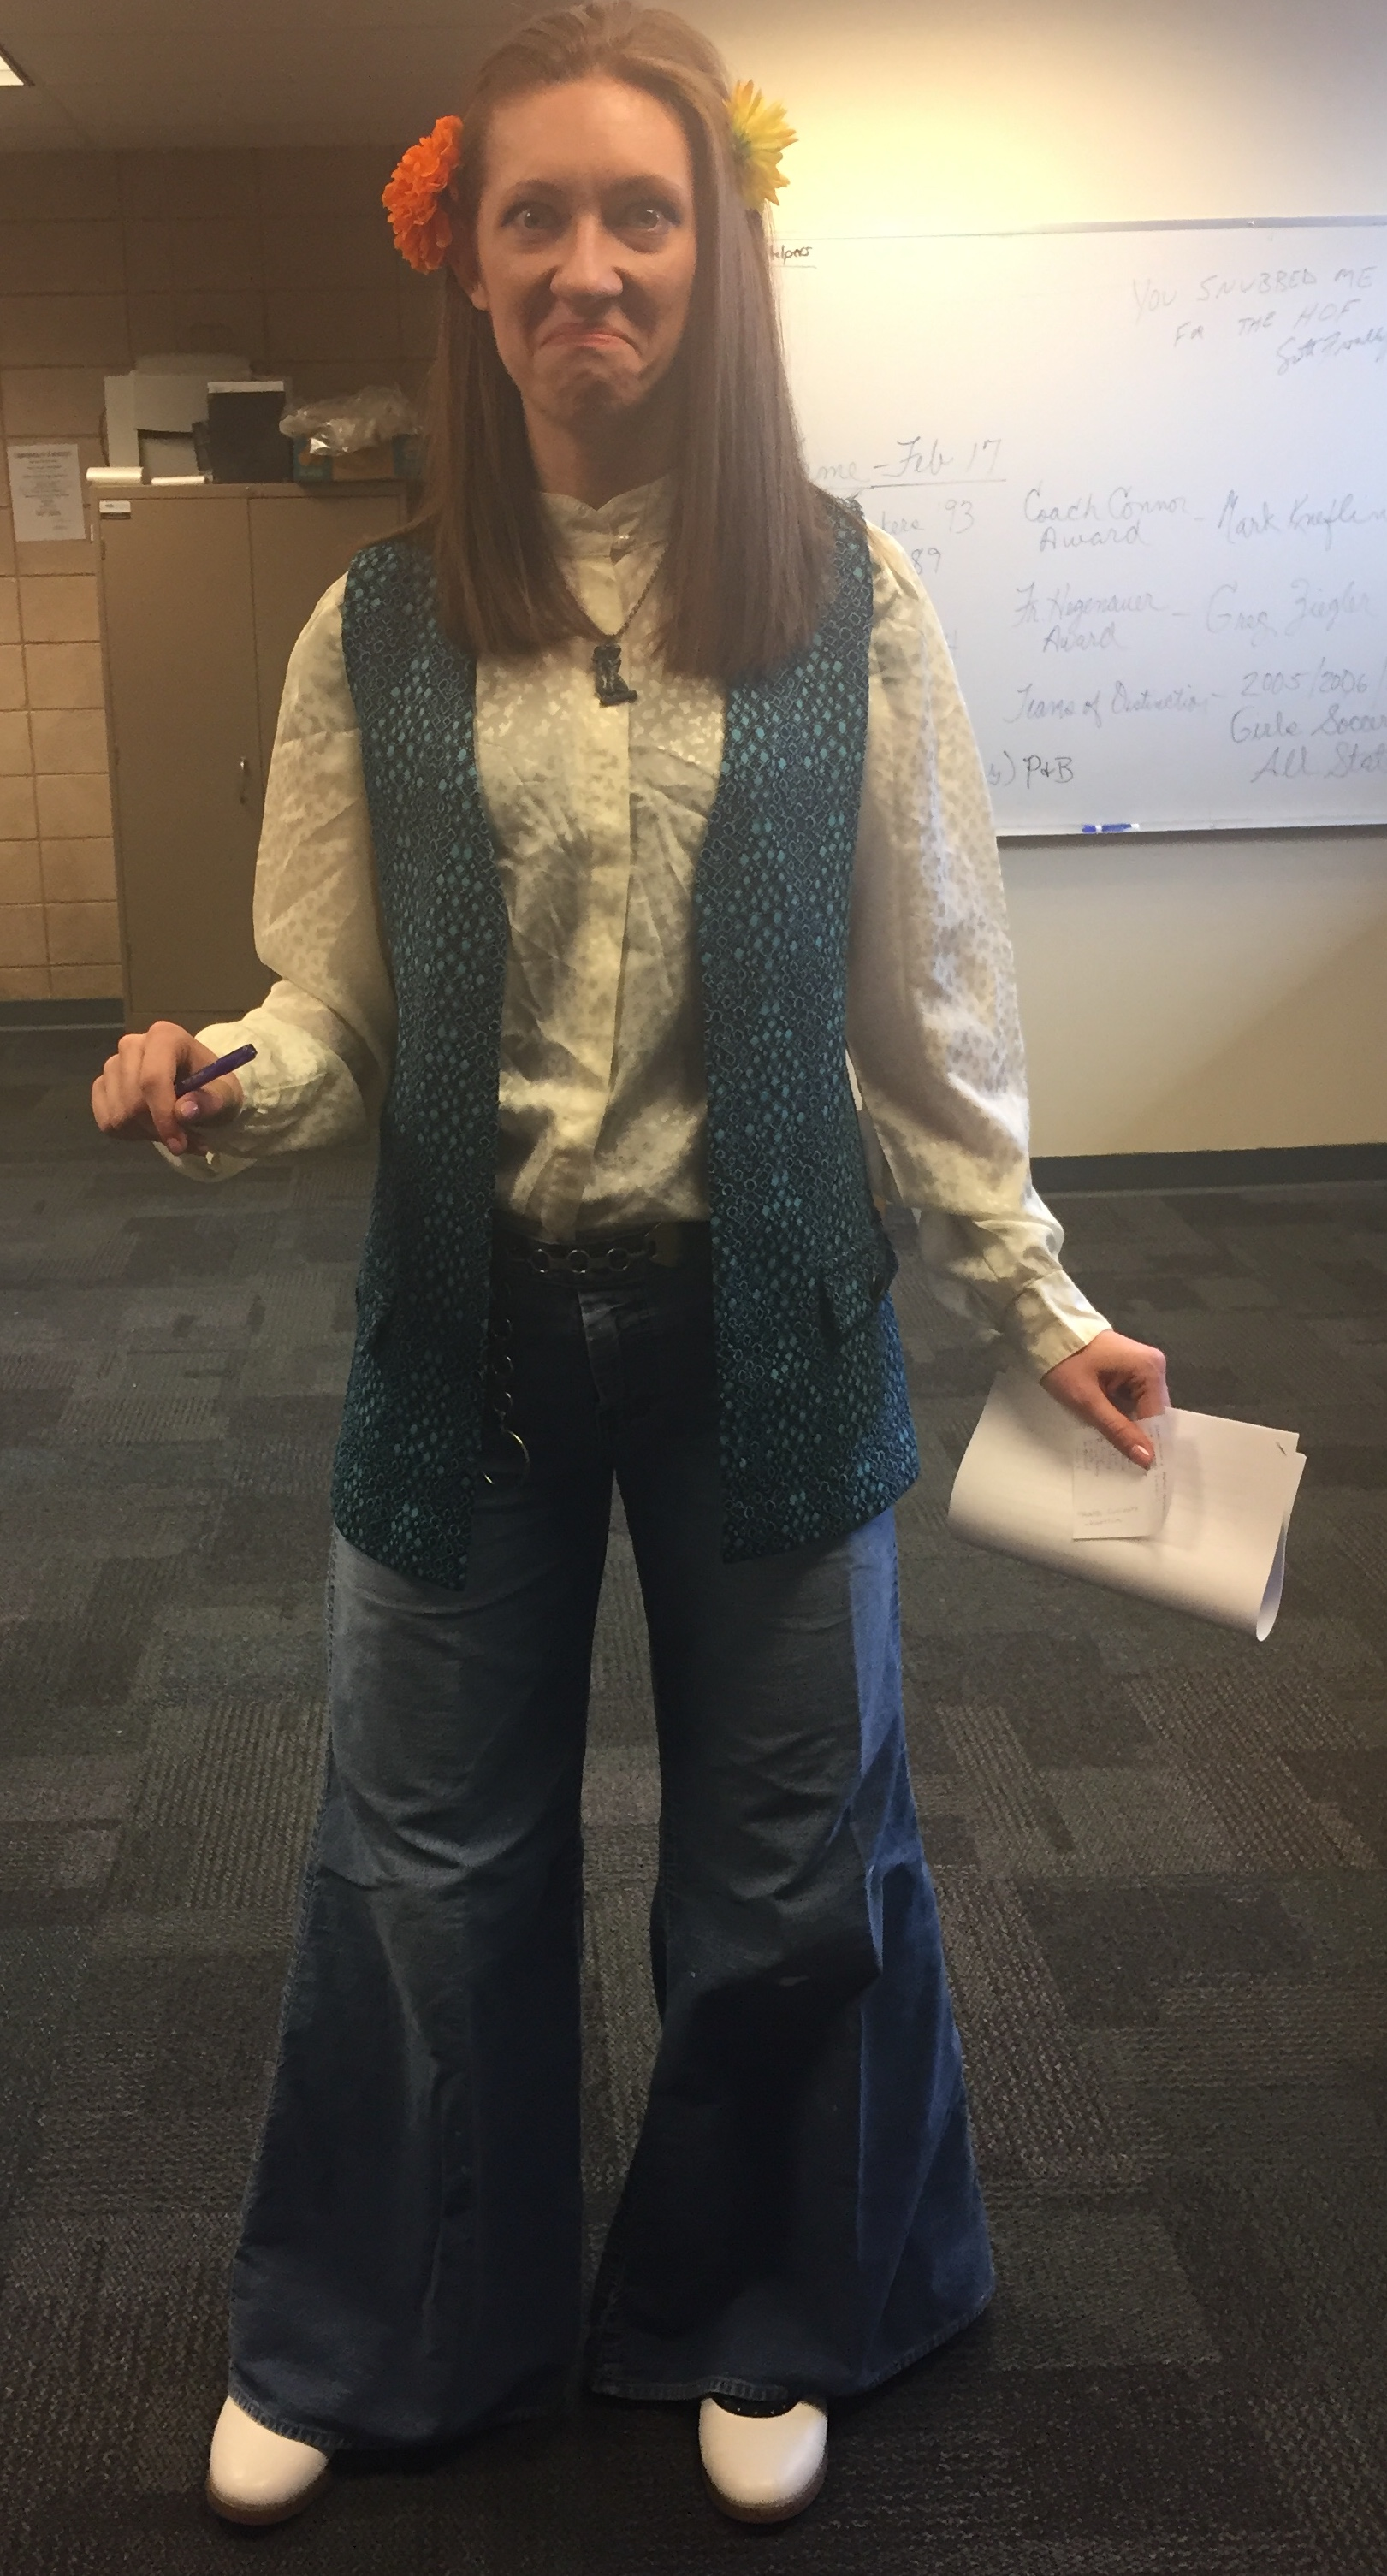 Ms.Katrina Hlebiczki, a 2012 NCC graduate and 1st year Mathematics Teacher at NCC dresses up according to the day's theme during Catholic School's Week.